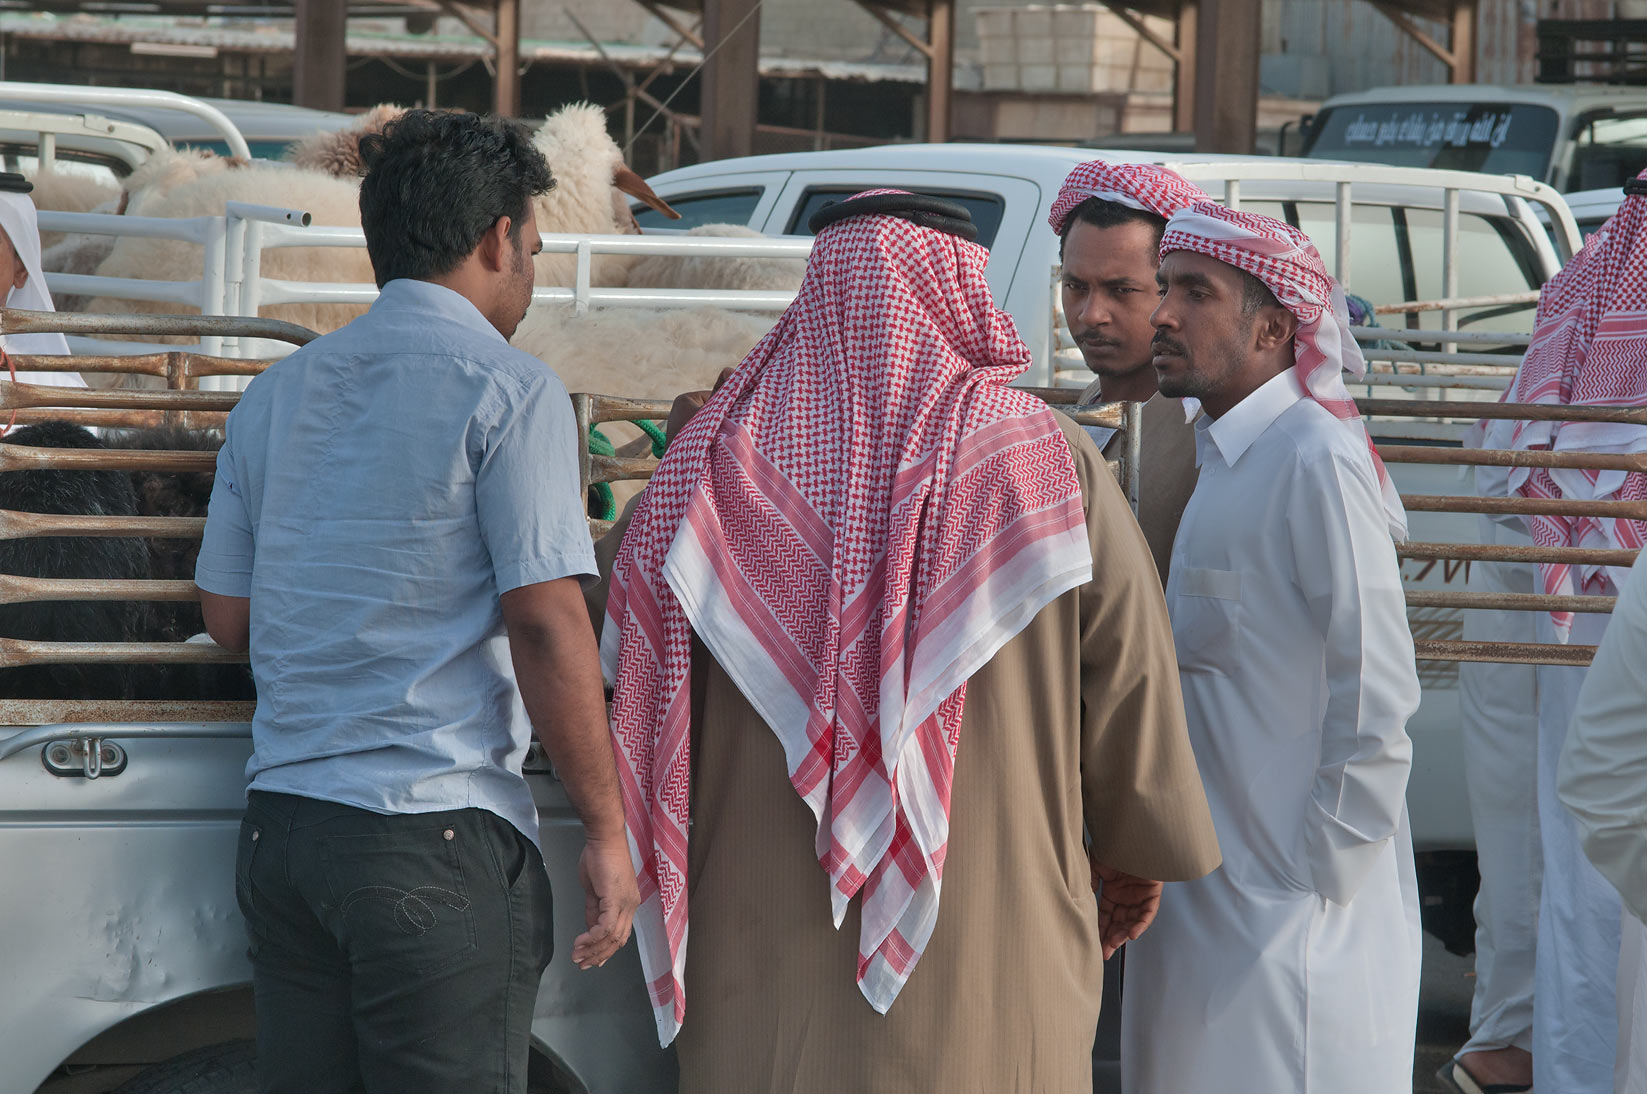 Bargaining near a truck in Sheep Market, Wholesale Market area. Doha, Qatar